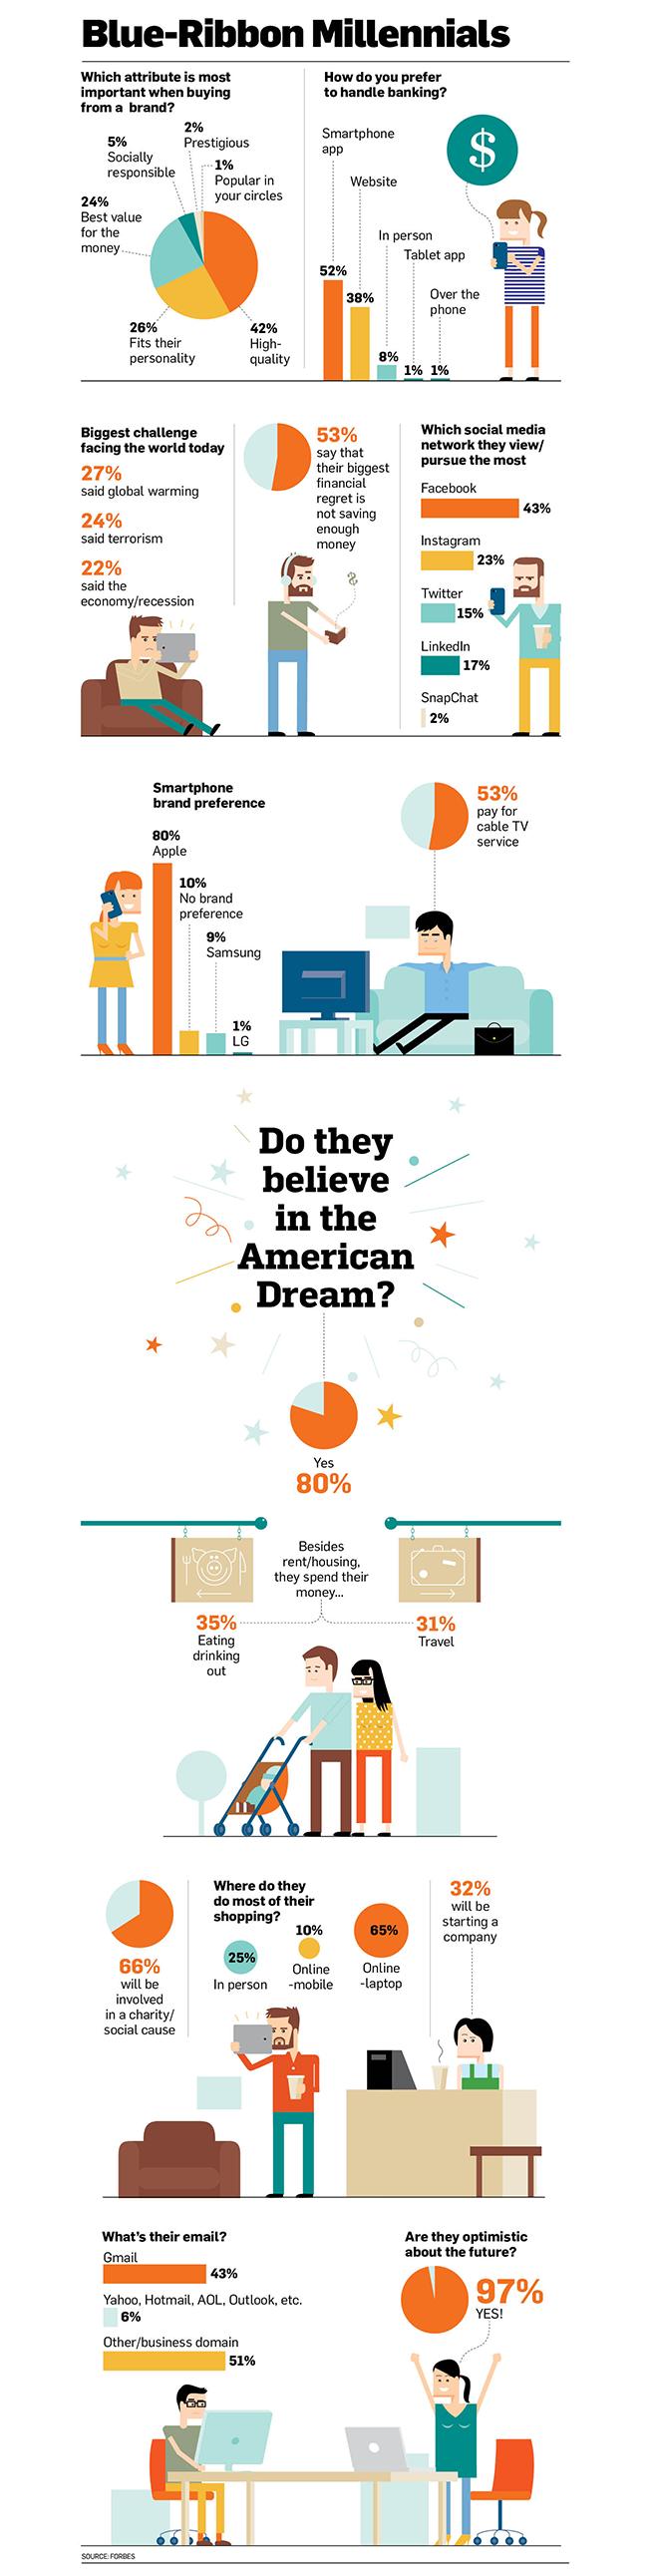 A survey of the brightest millennial business minds